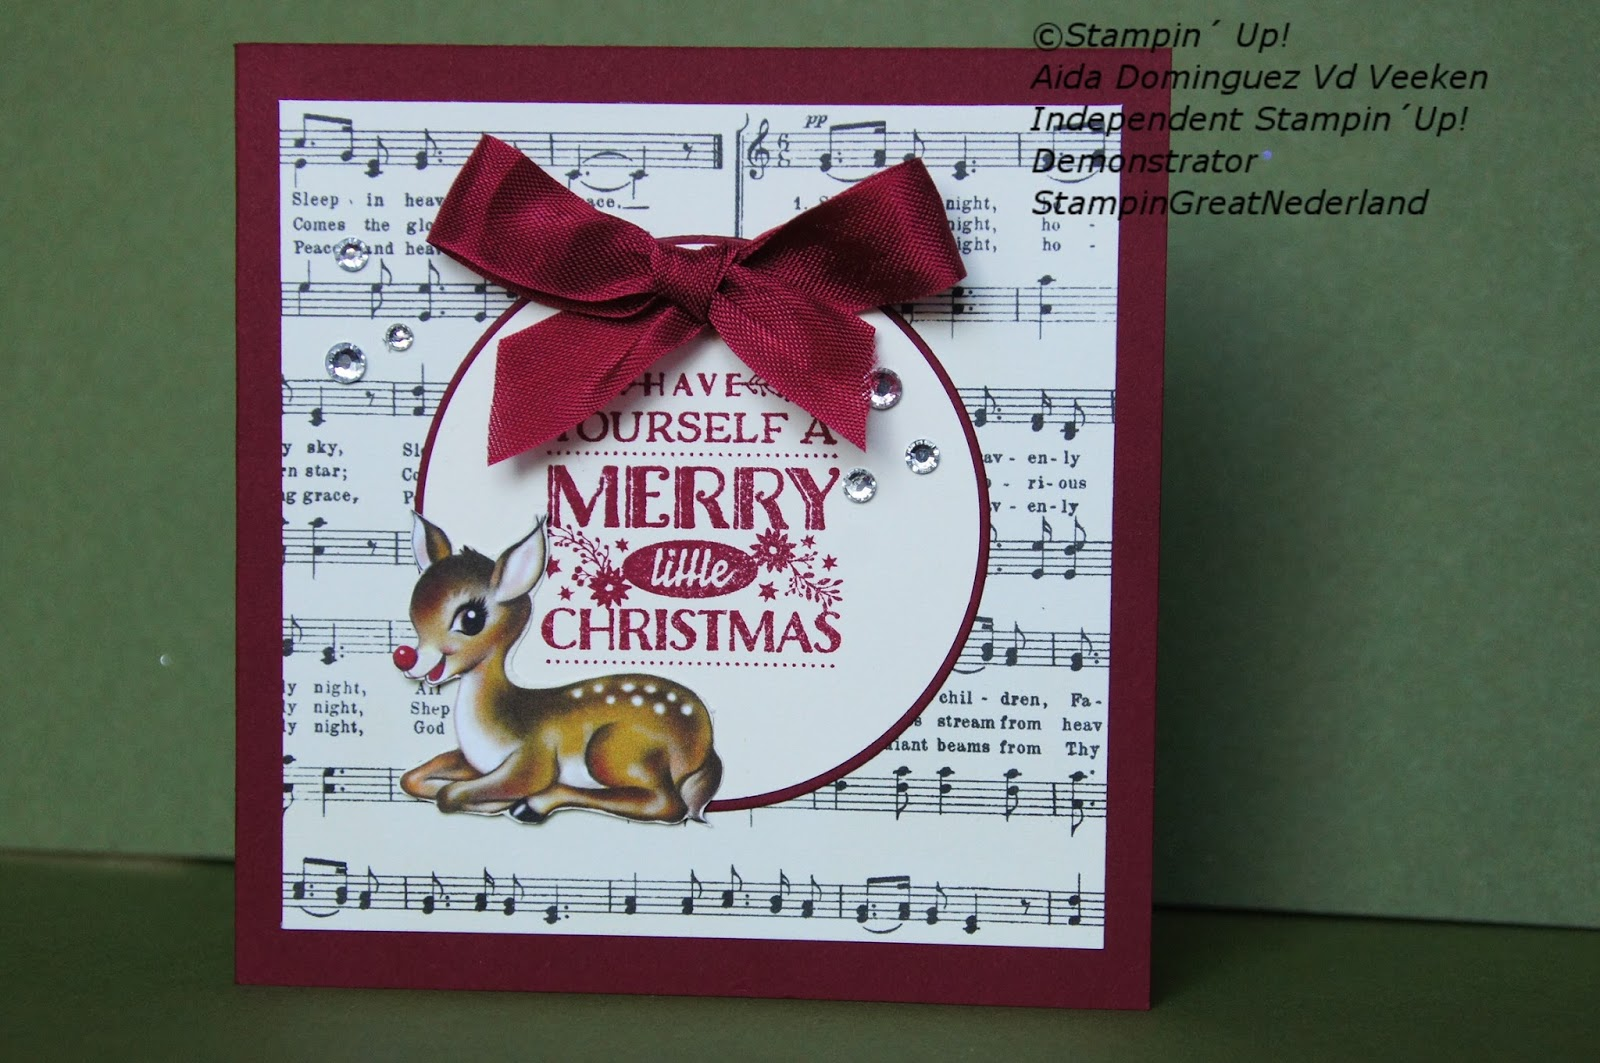 StampinGreatNederland: Have Yourself a Merry Little Christmas